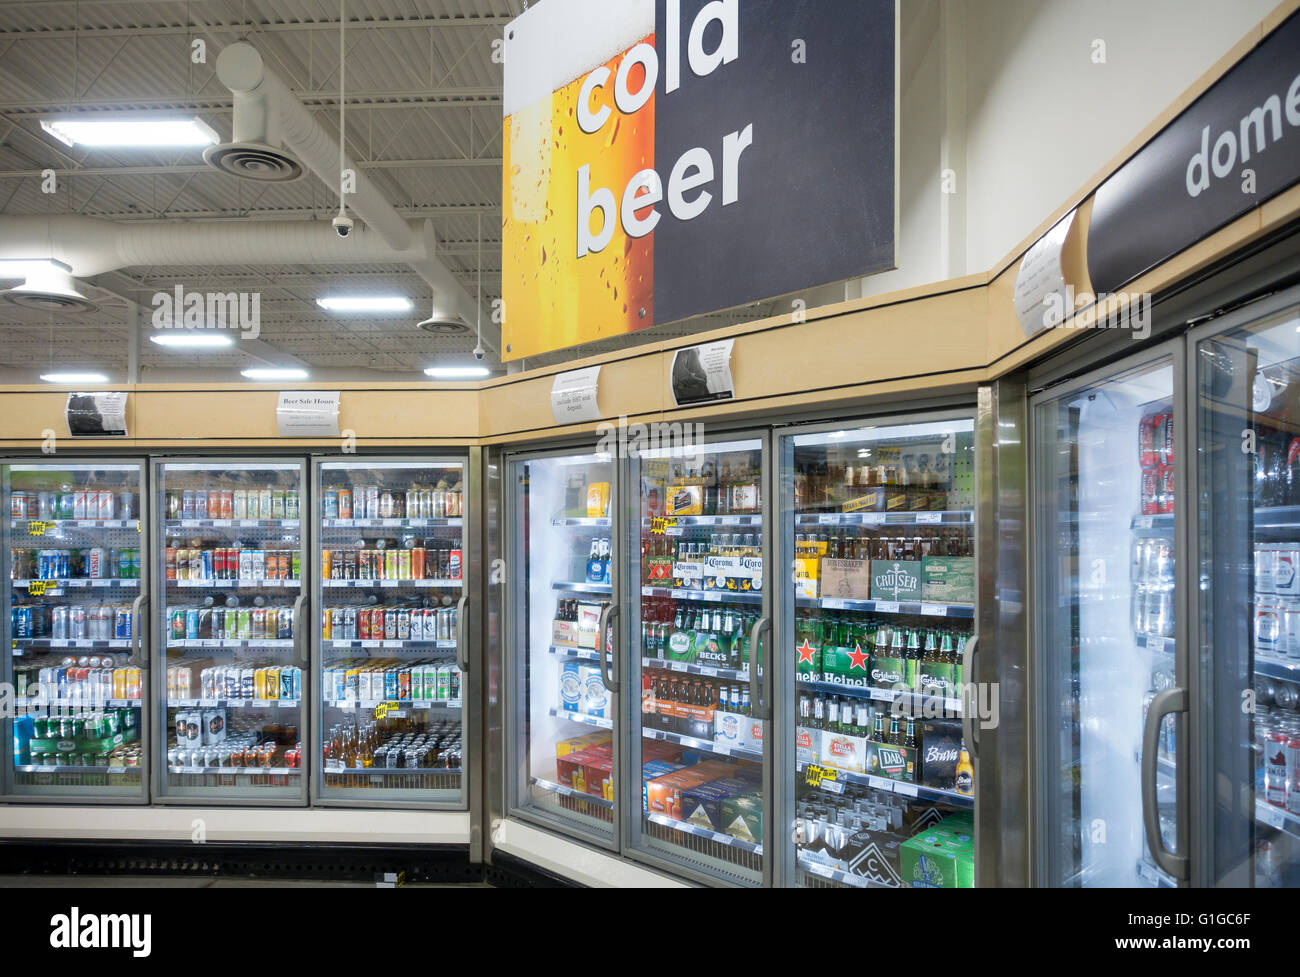 Beer being sold for the first time in supermakets within the